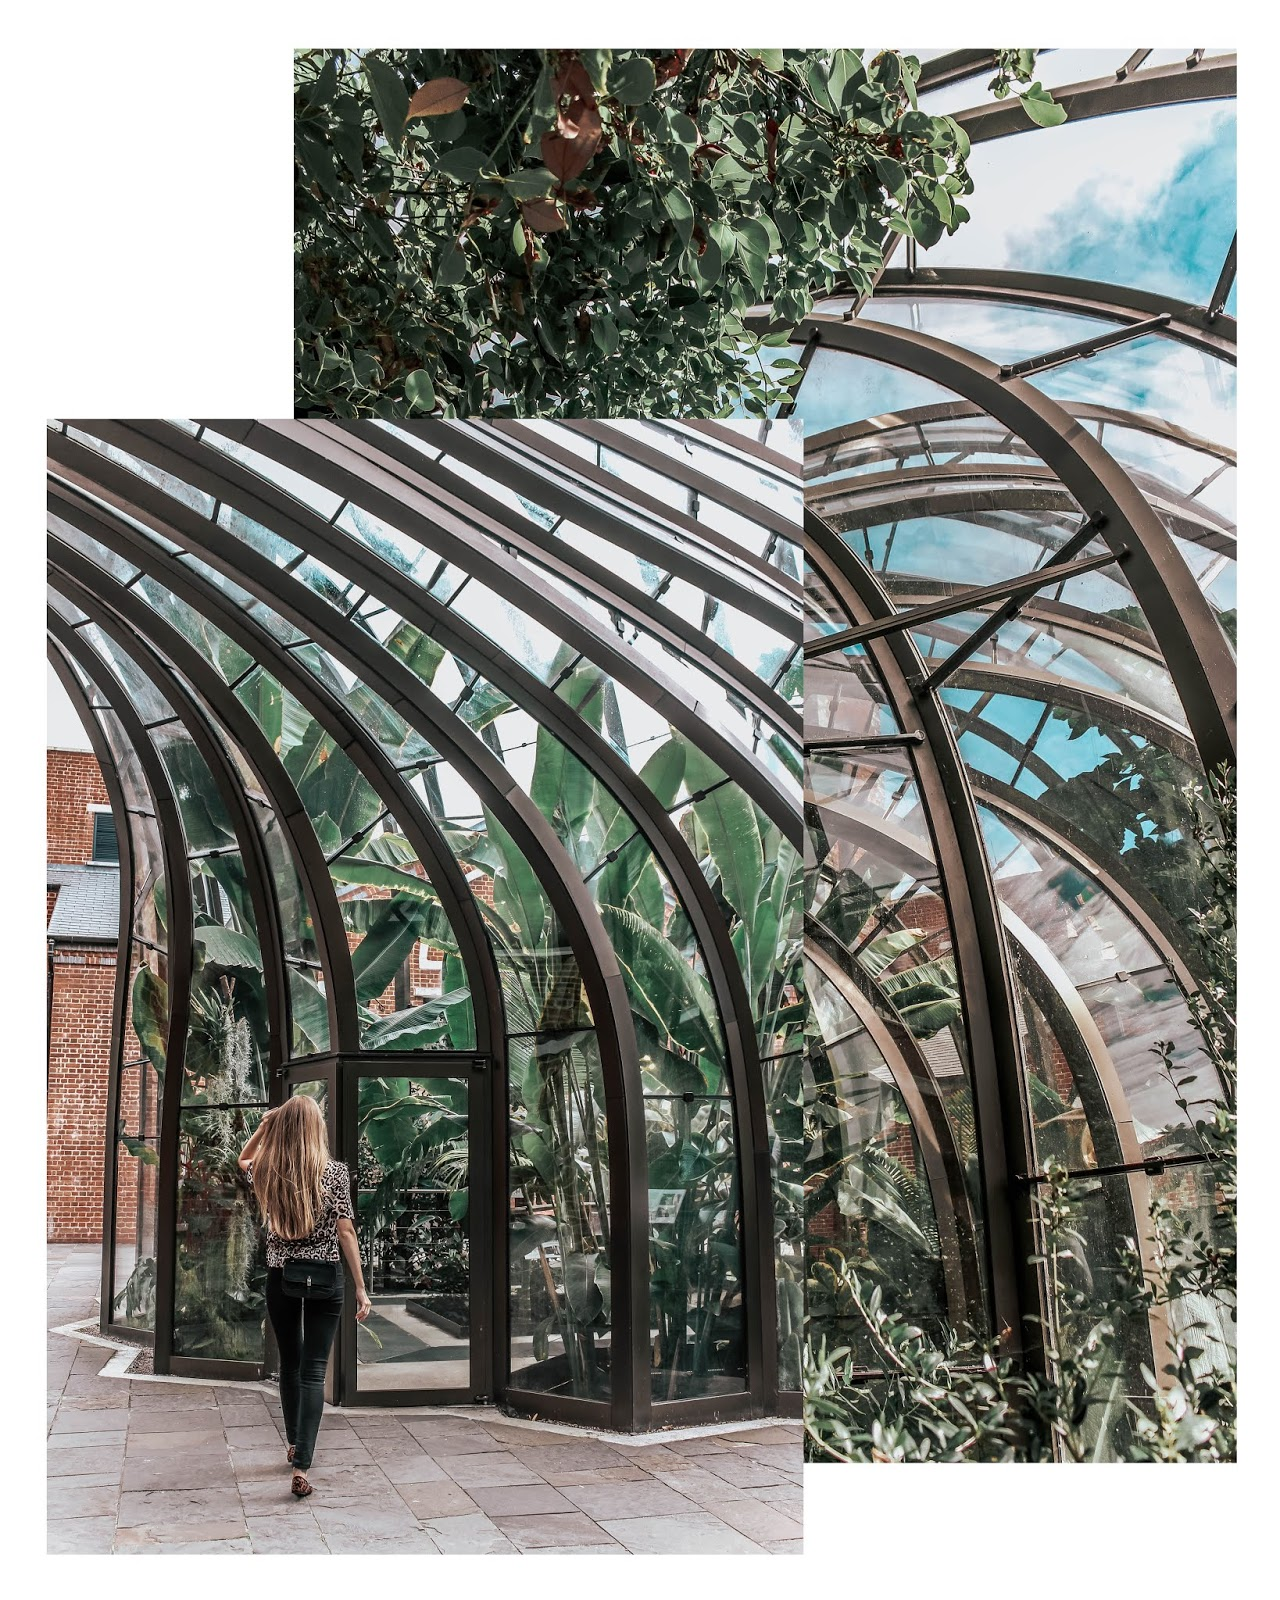 Bombay Sapphire Gin Distillery Tour and Taste Blog Review